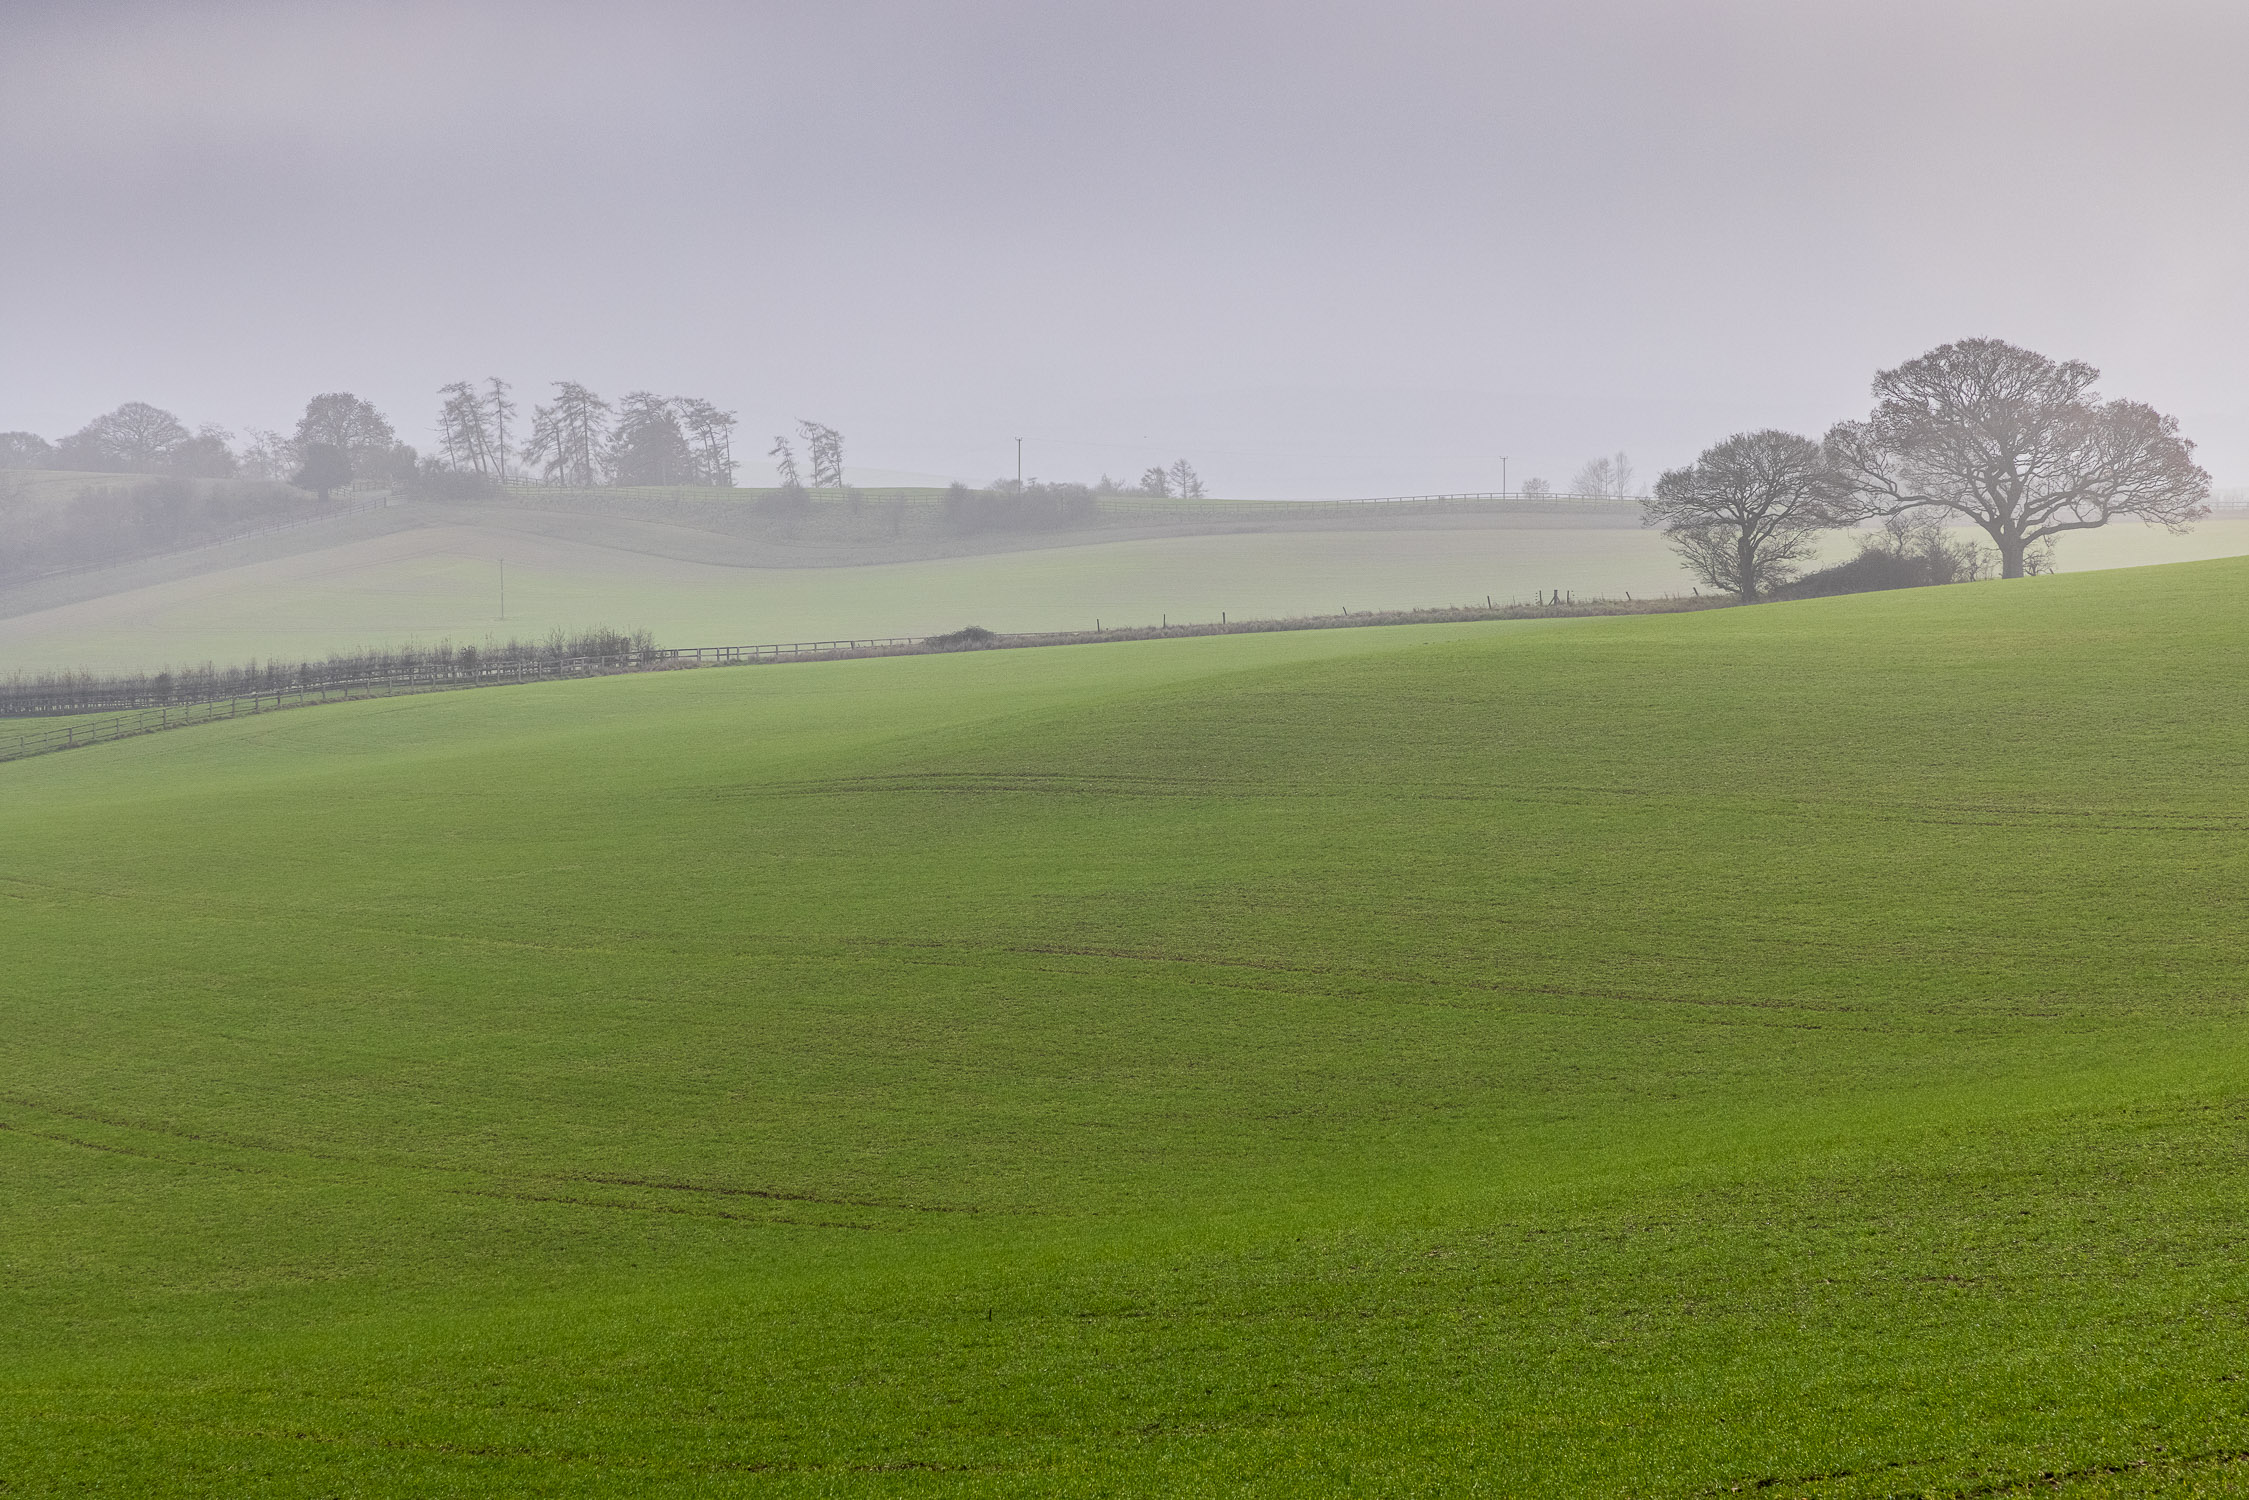 Misty afternoon on Cranborne Chase